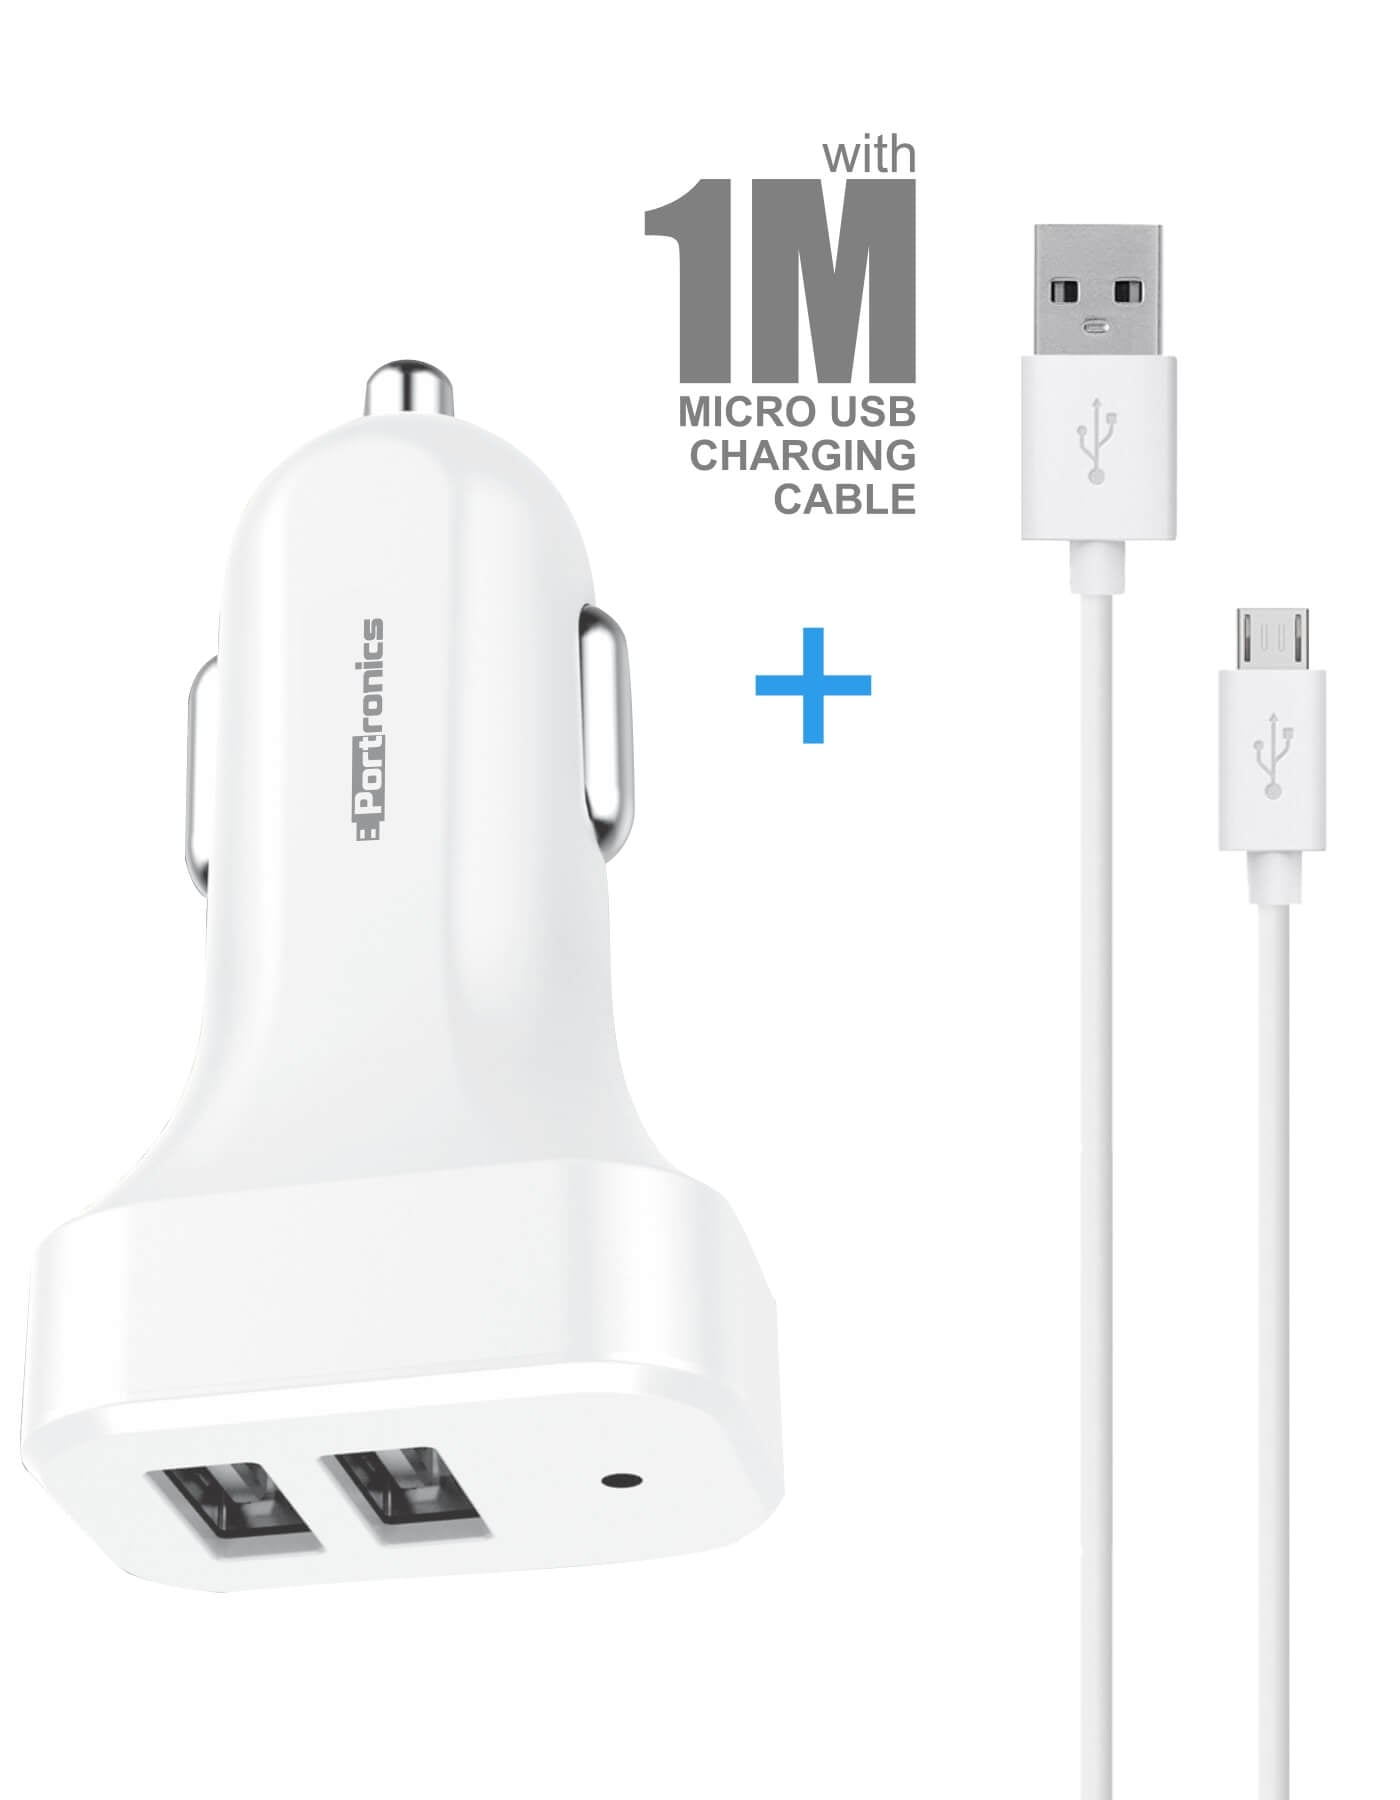 it comes with 1meter micro usb charging cable